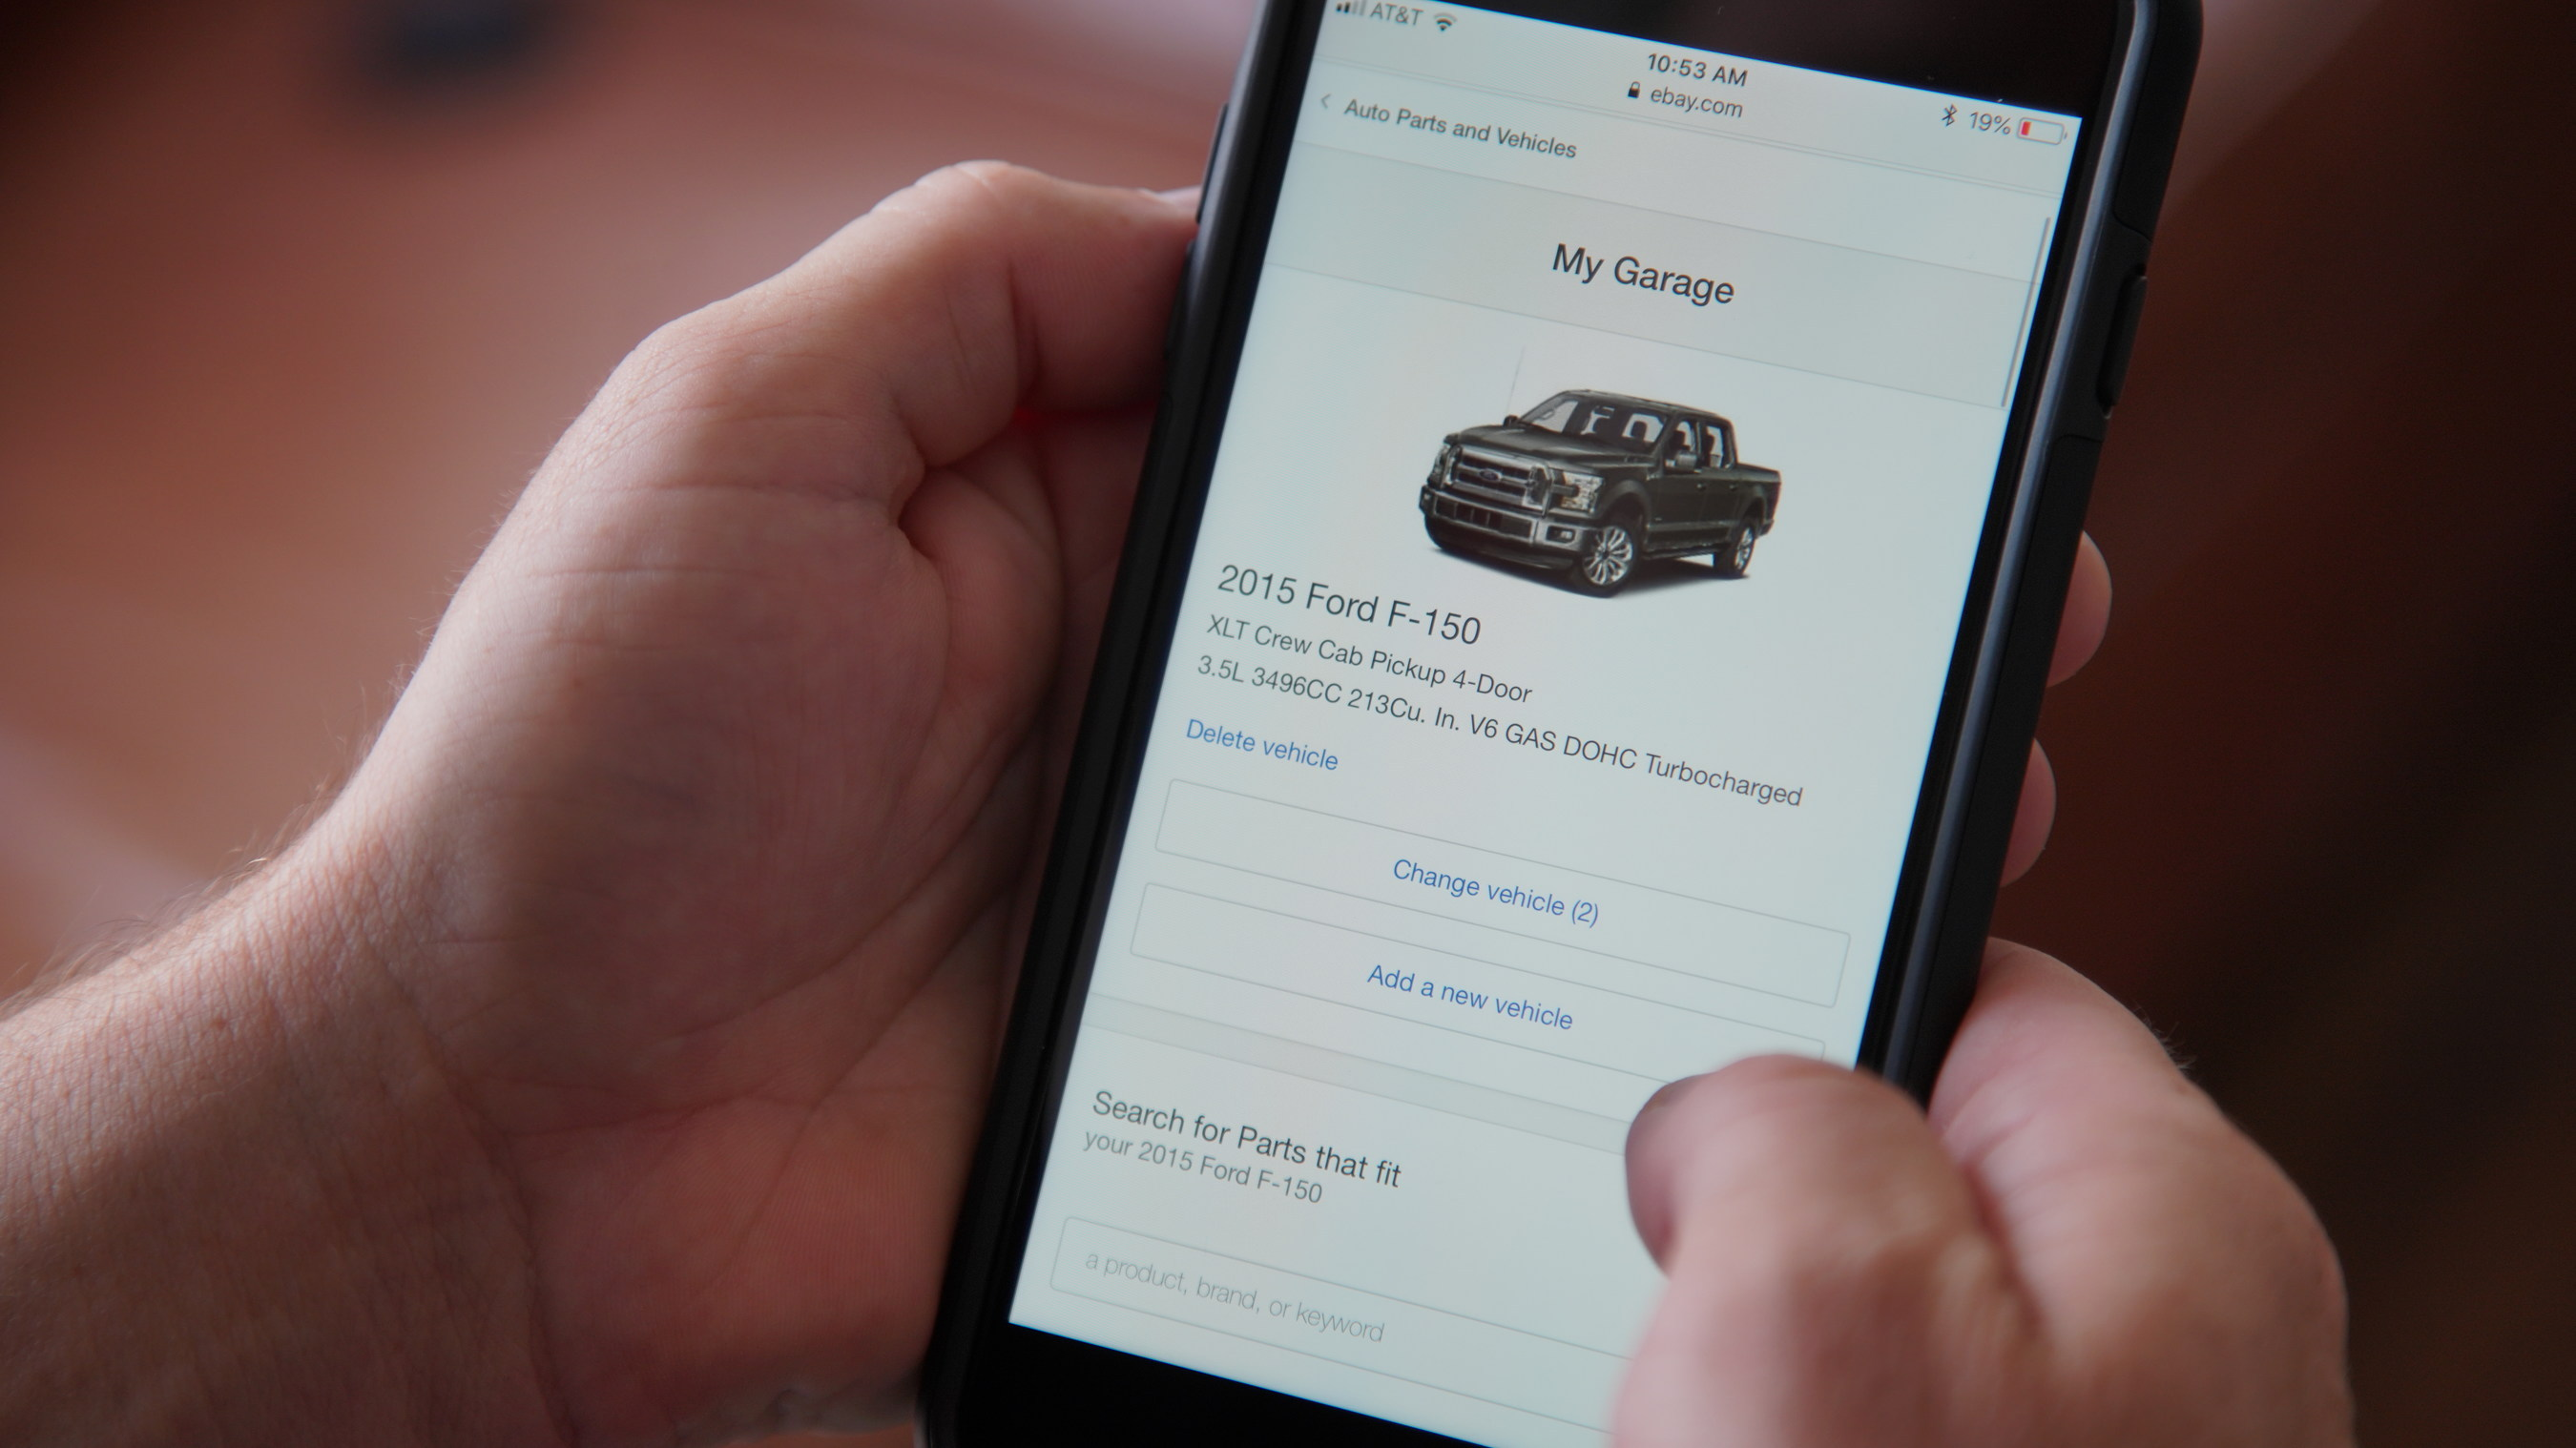 Ebay Motors Introduces New Tool To Simplify Auto Parts Shopping